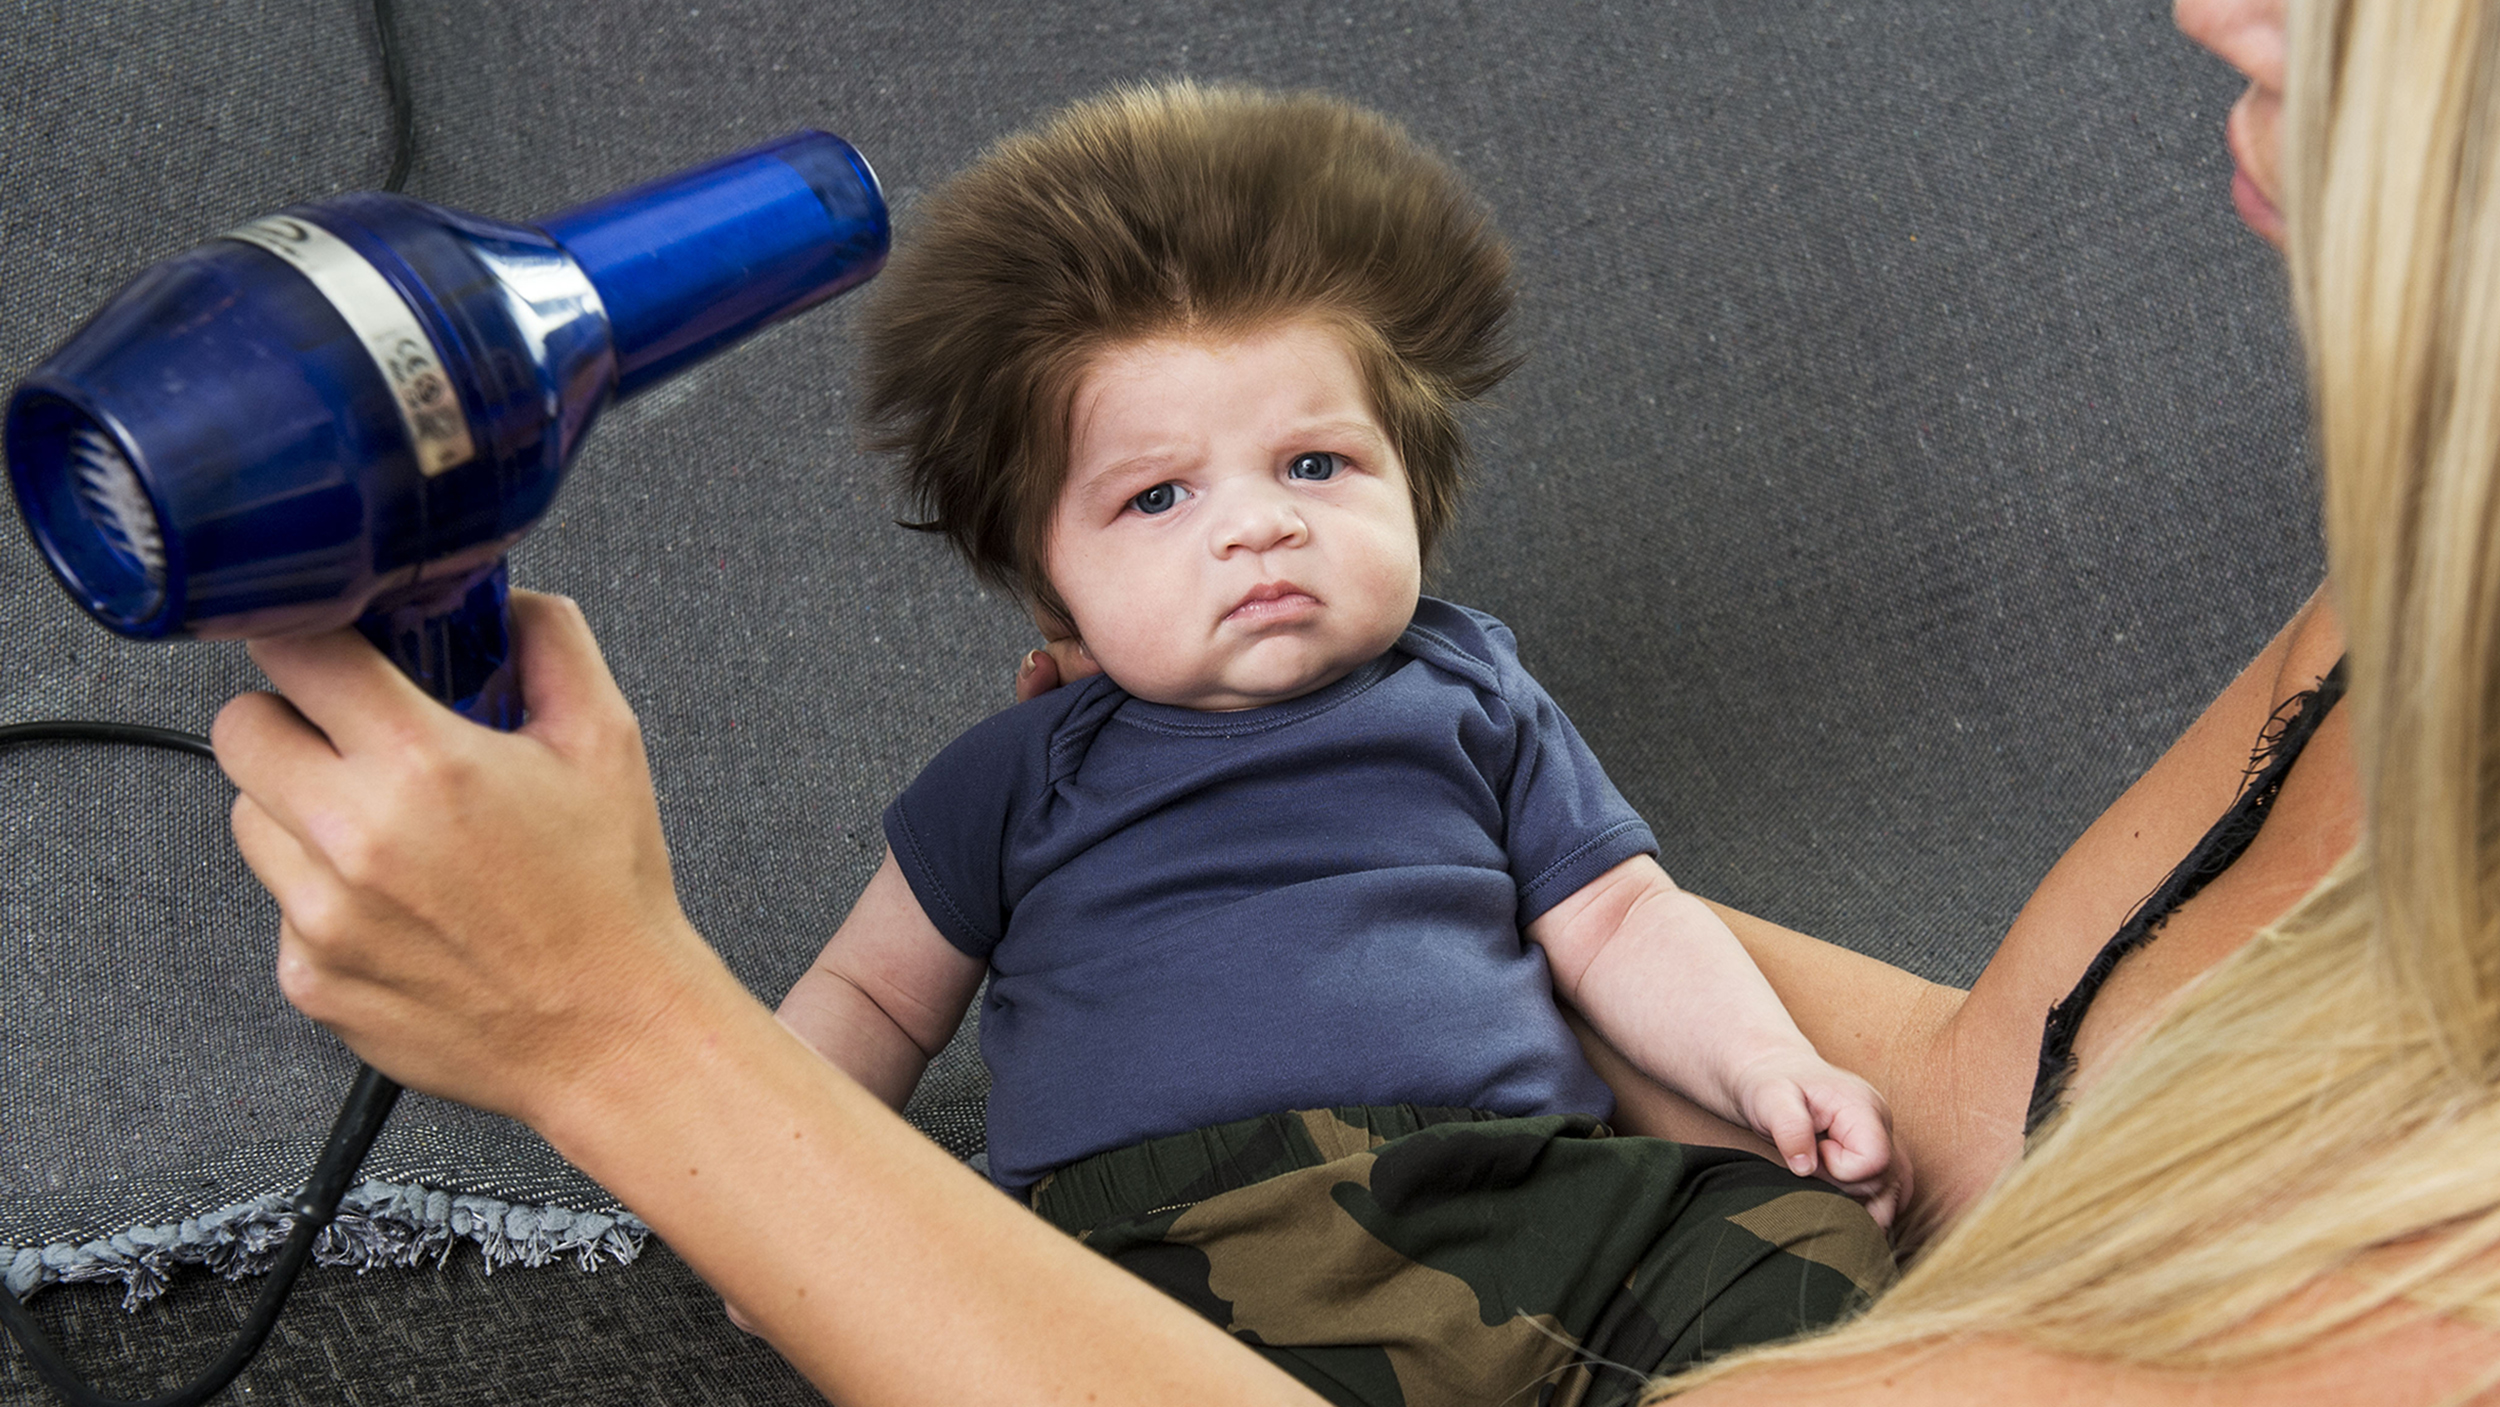 Meet The 9 Week Old Baby Whos Going Viral For His Full Head Of Hair